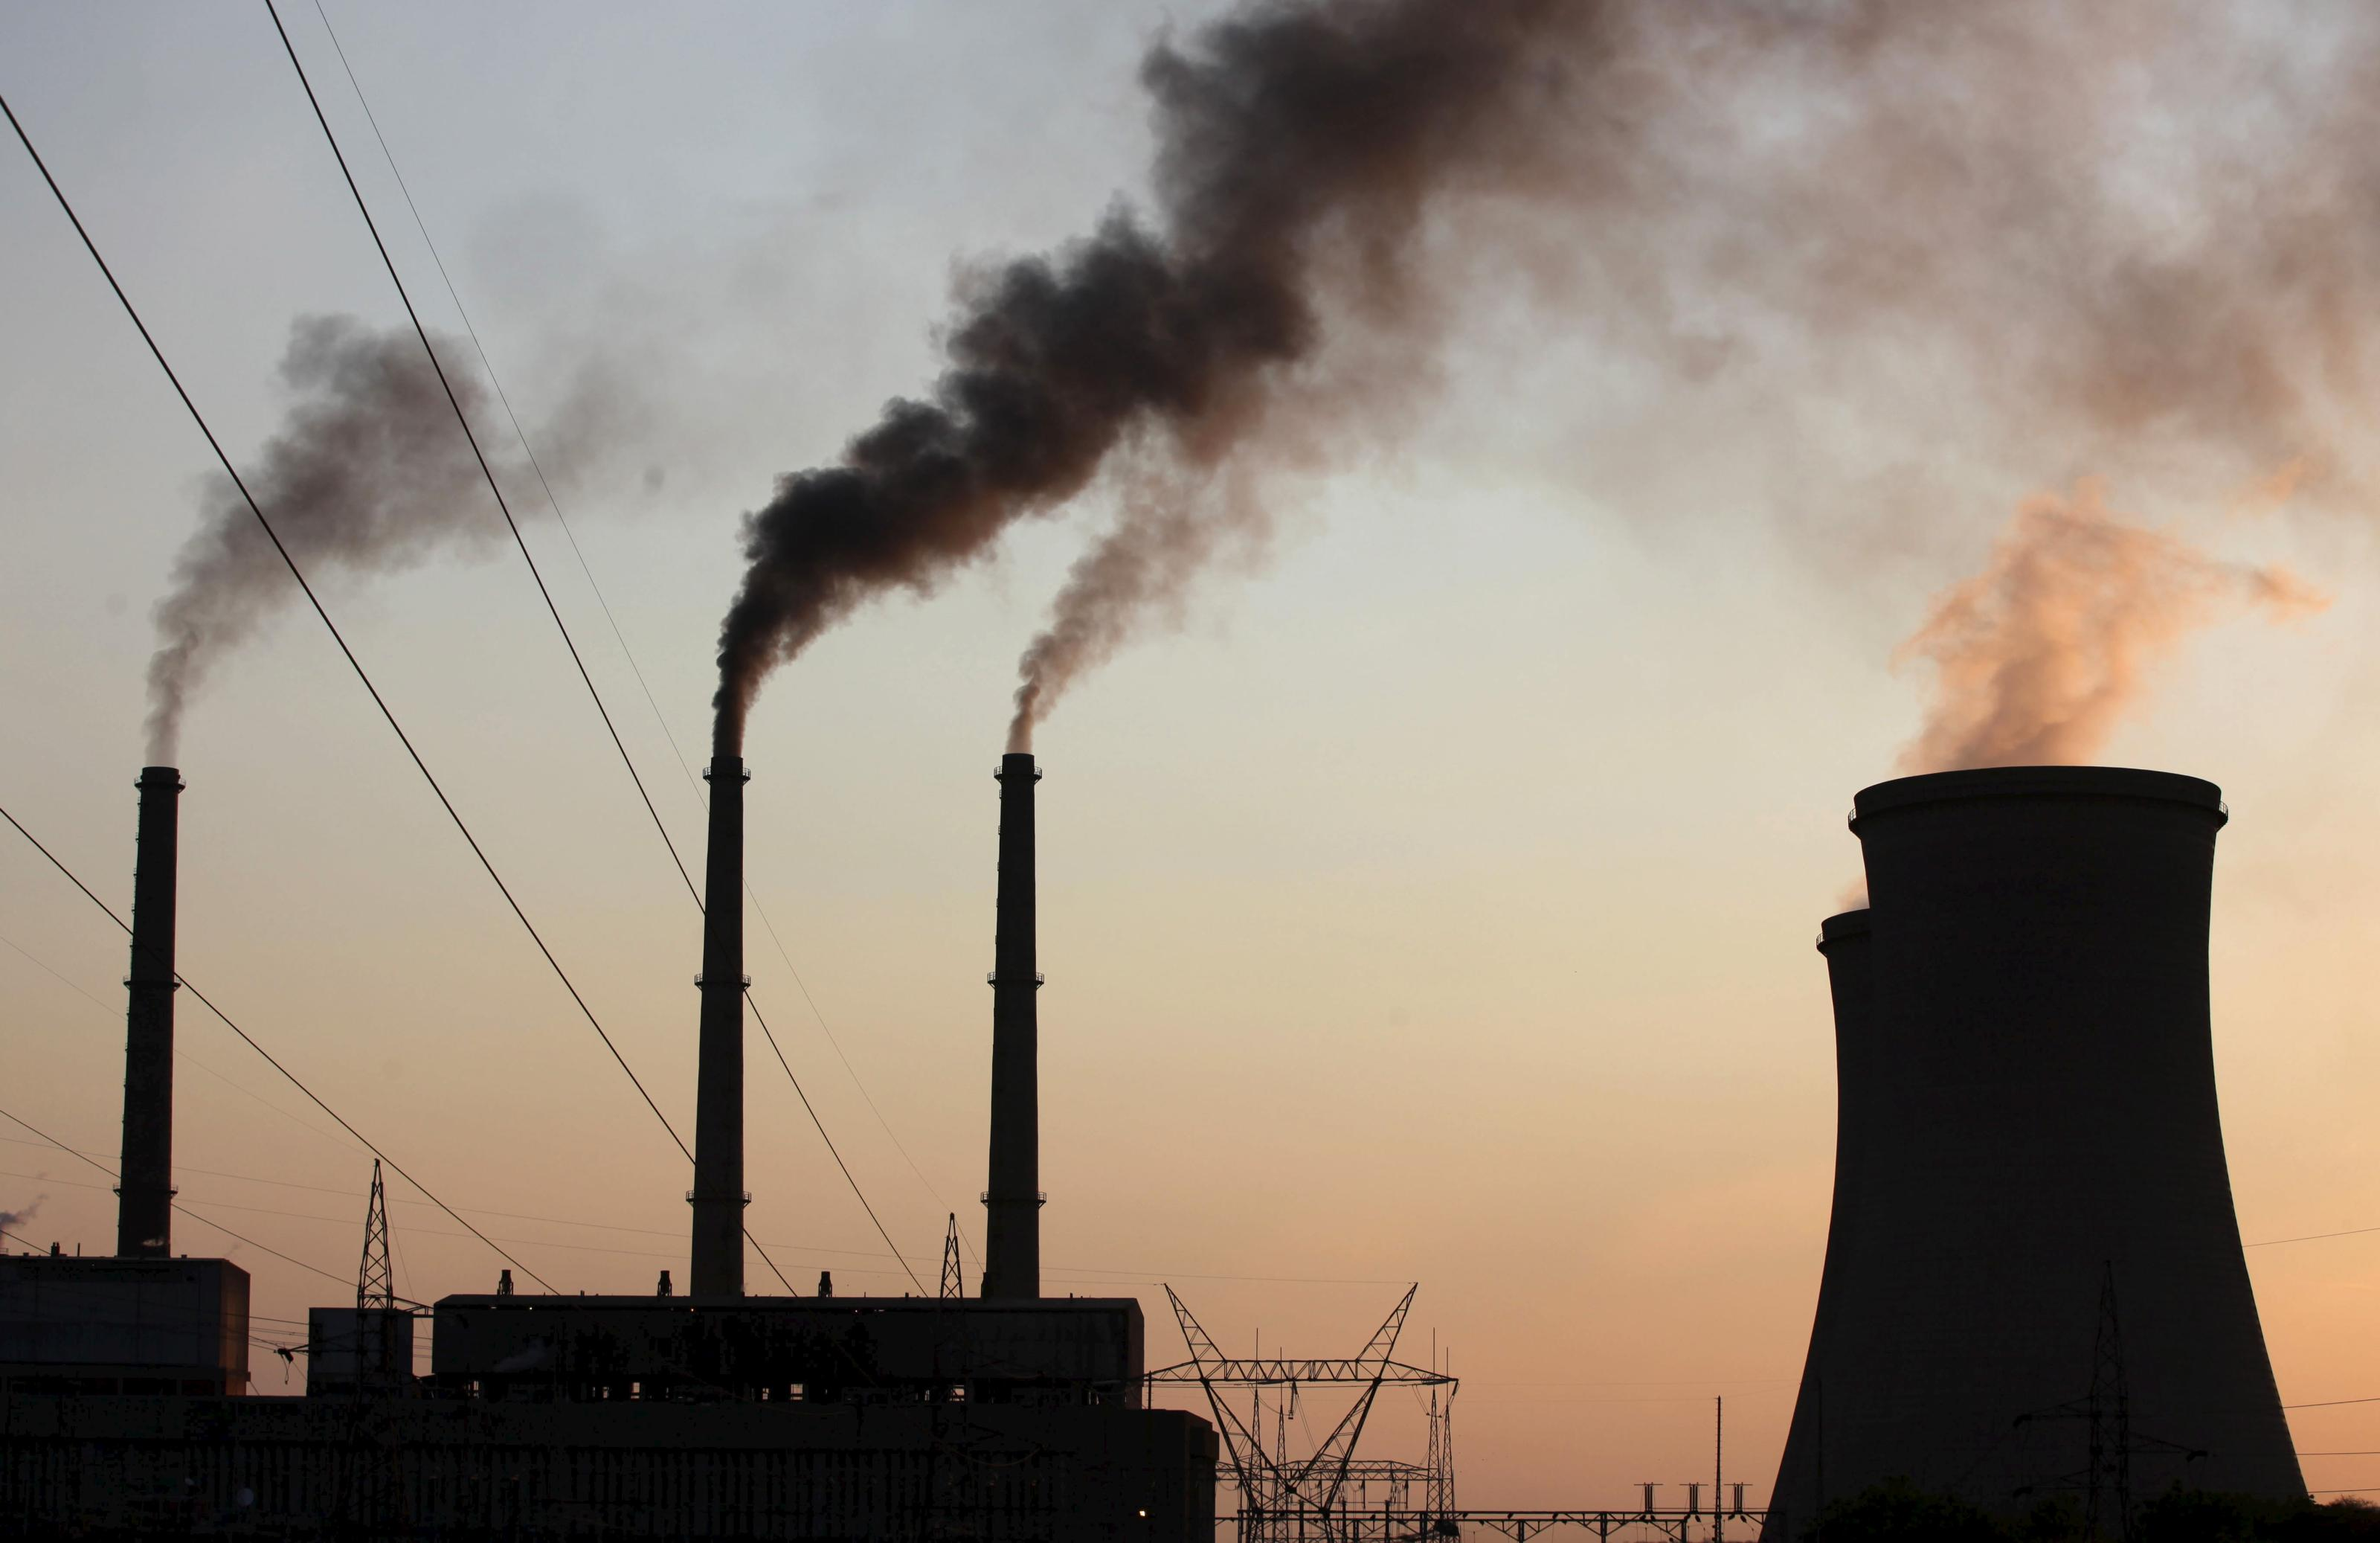 Air pollution in Africa will worsen over the next ten years